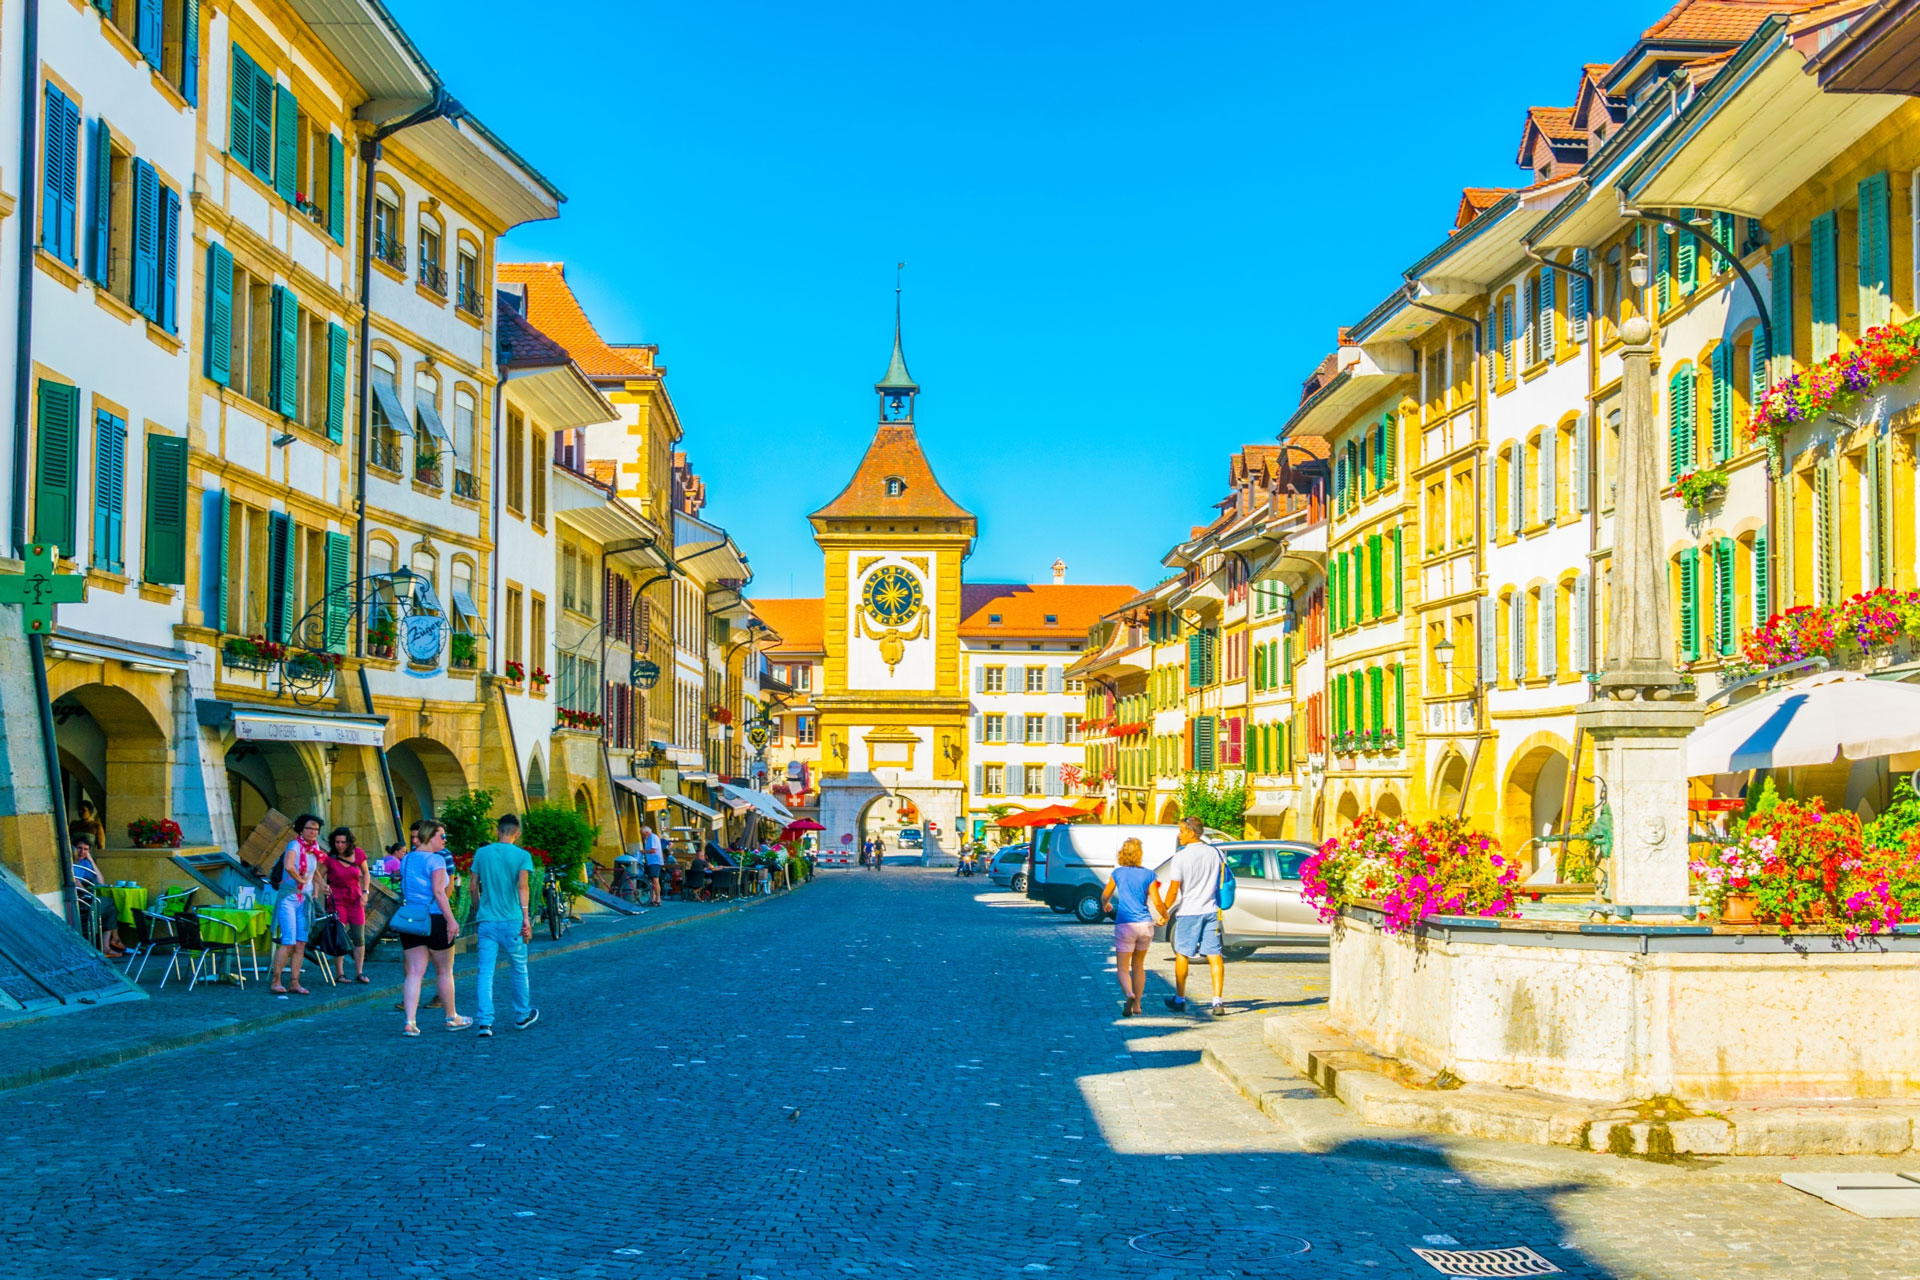 Bern-Old-Town-Switzerland.jpg